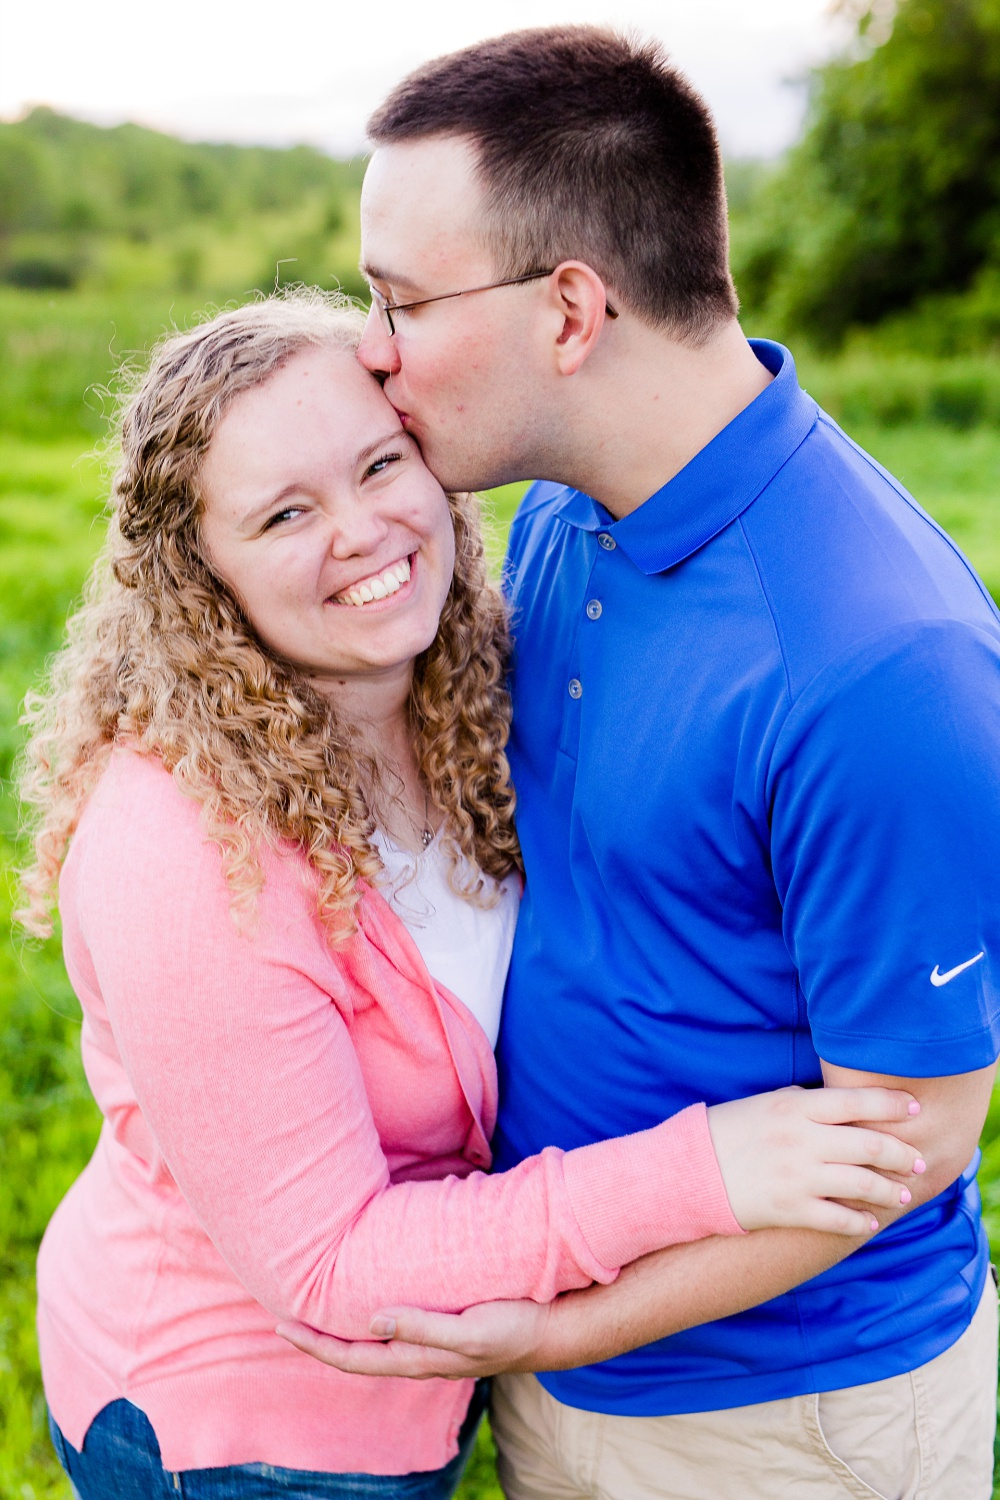 Minnesota Country Styled Engagement Pictures by Amber Langerud Photography | Happy couple wearing casual attire